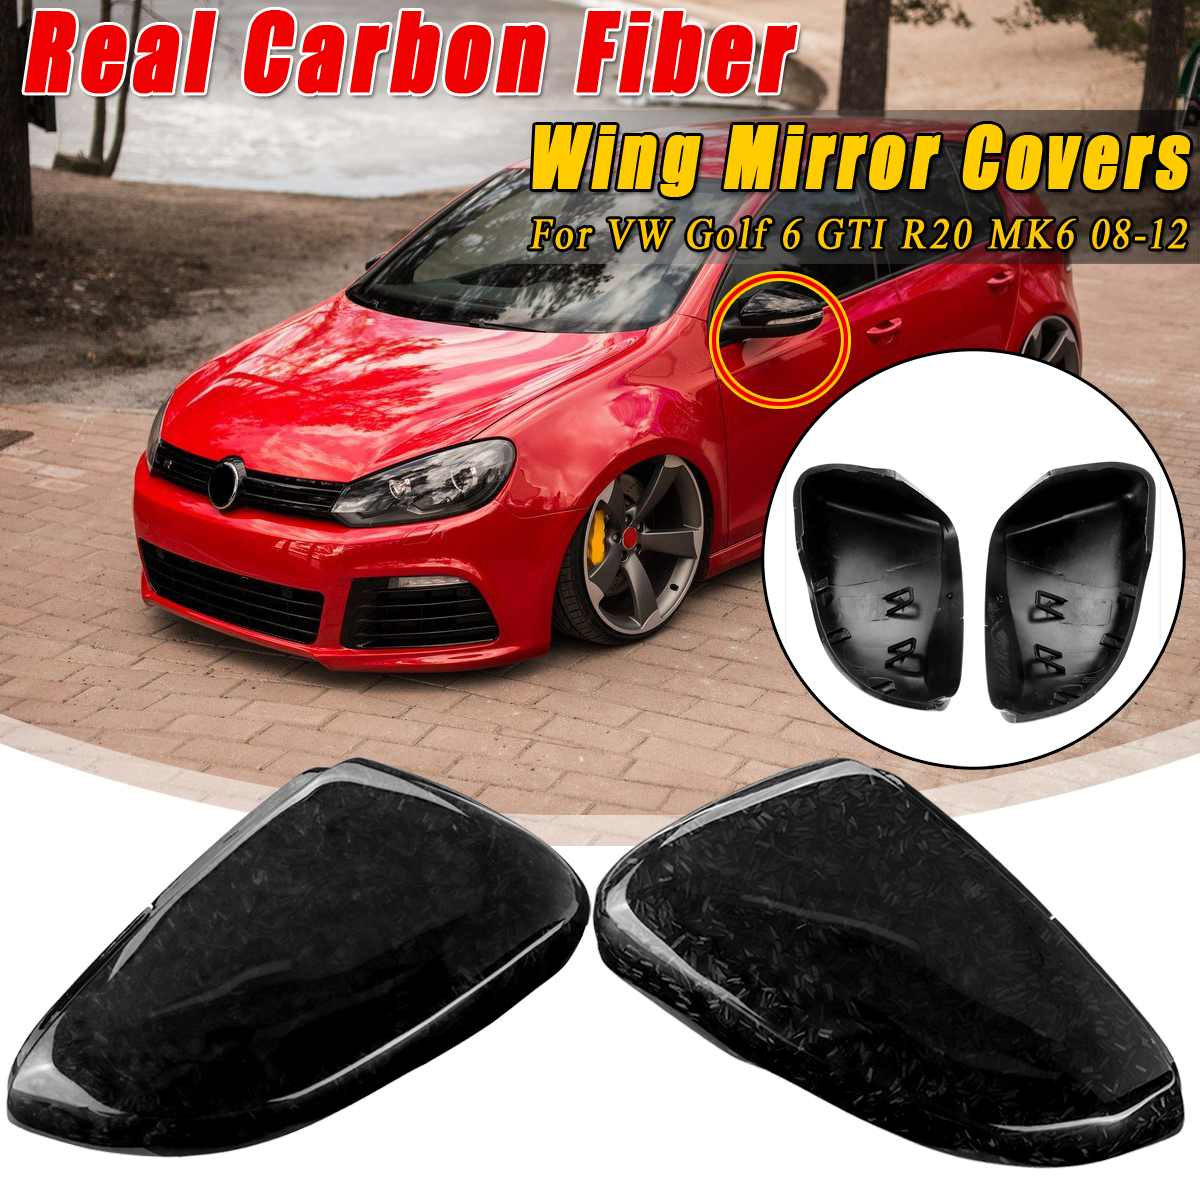 Good And Cheap Products Fast Delivery Worldwide Vw Golf 7 5 Gti On Shop Onvi